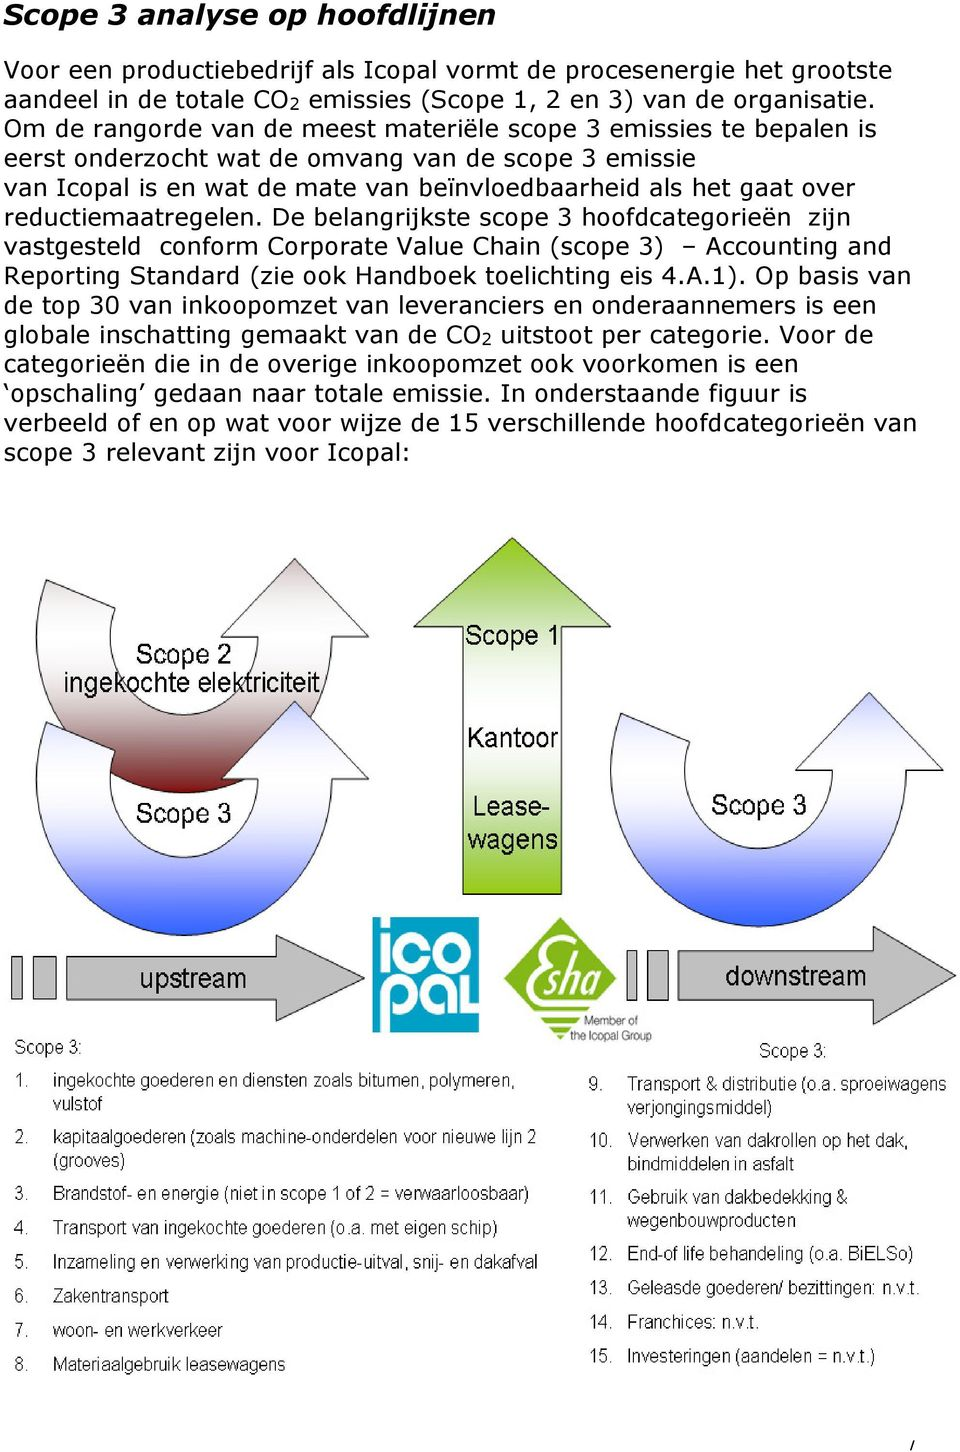 reductiemaatregelen. De belangrijkste scope 3 hoofdcategorieën zijn vastgesteld conform Corporate Value Chain (scope 3) Accounting and Reporting Standard (zie ook Handboek toelichting eis 4.A.1).